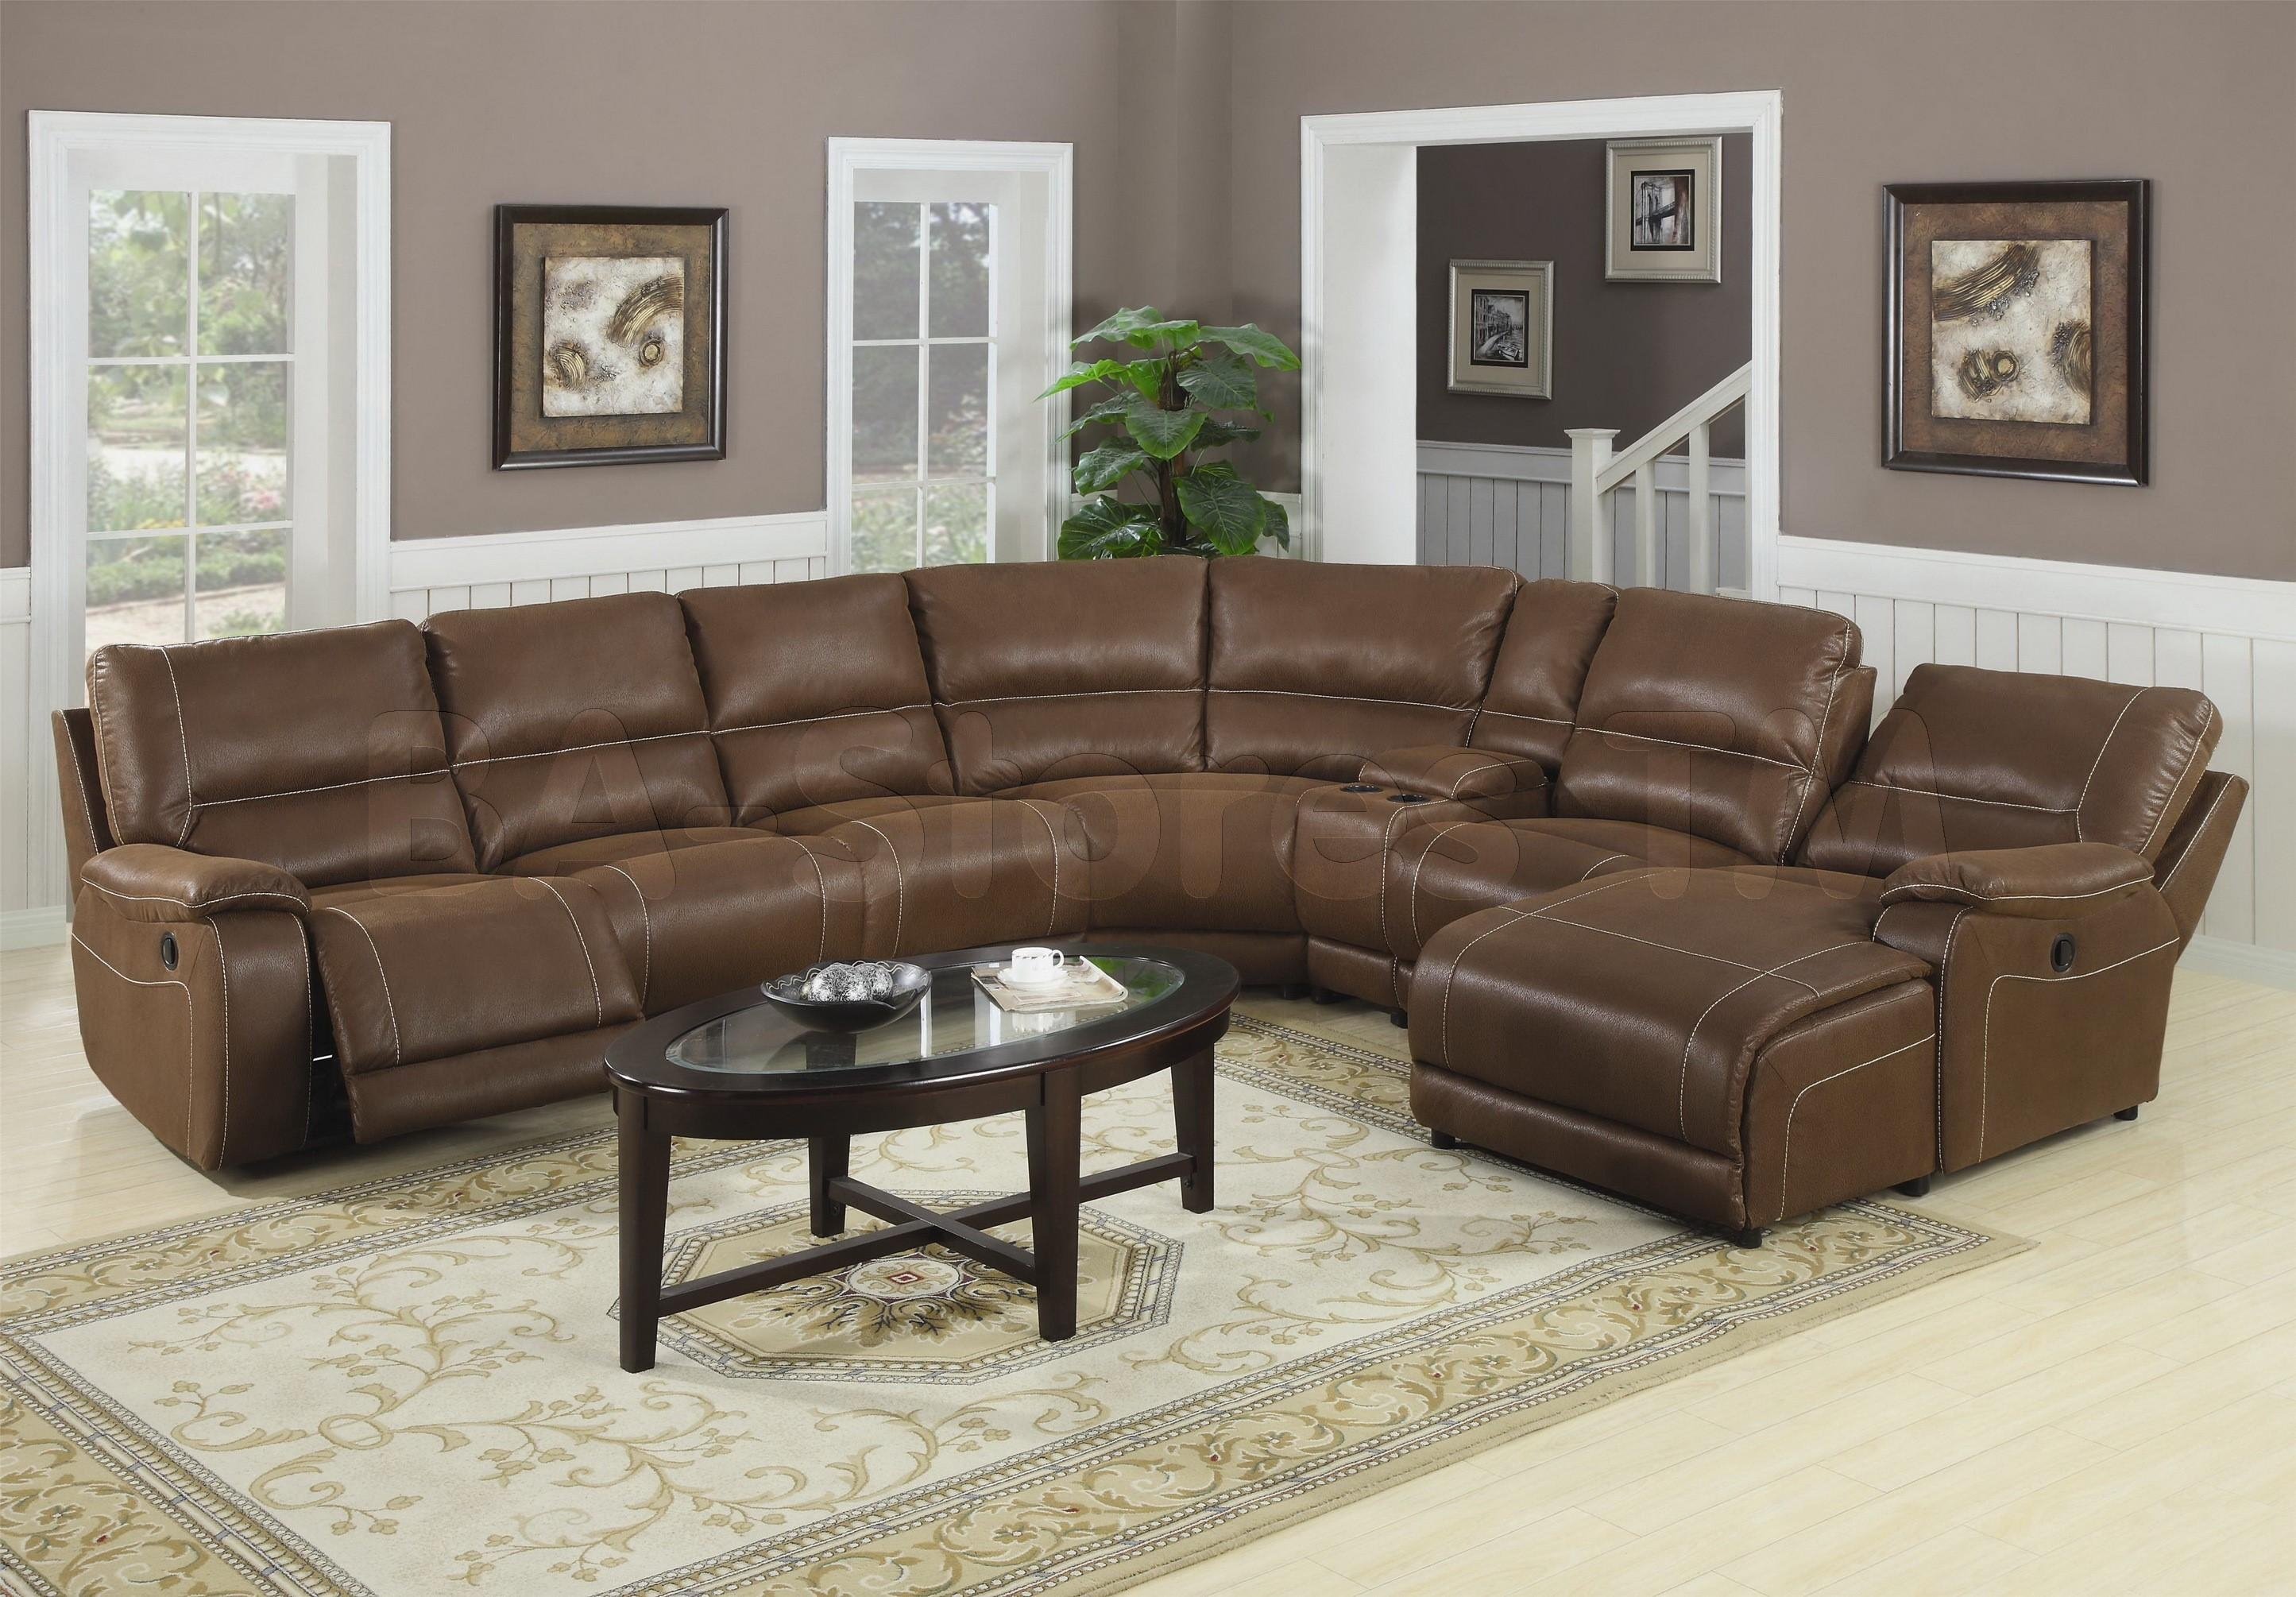 Sofas Center : Leather Sectional Sofas Closeouts With Recliners Throughout Sectional Sofa San Diego (Image 16 of 20)